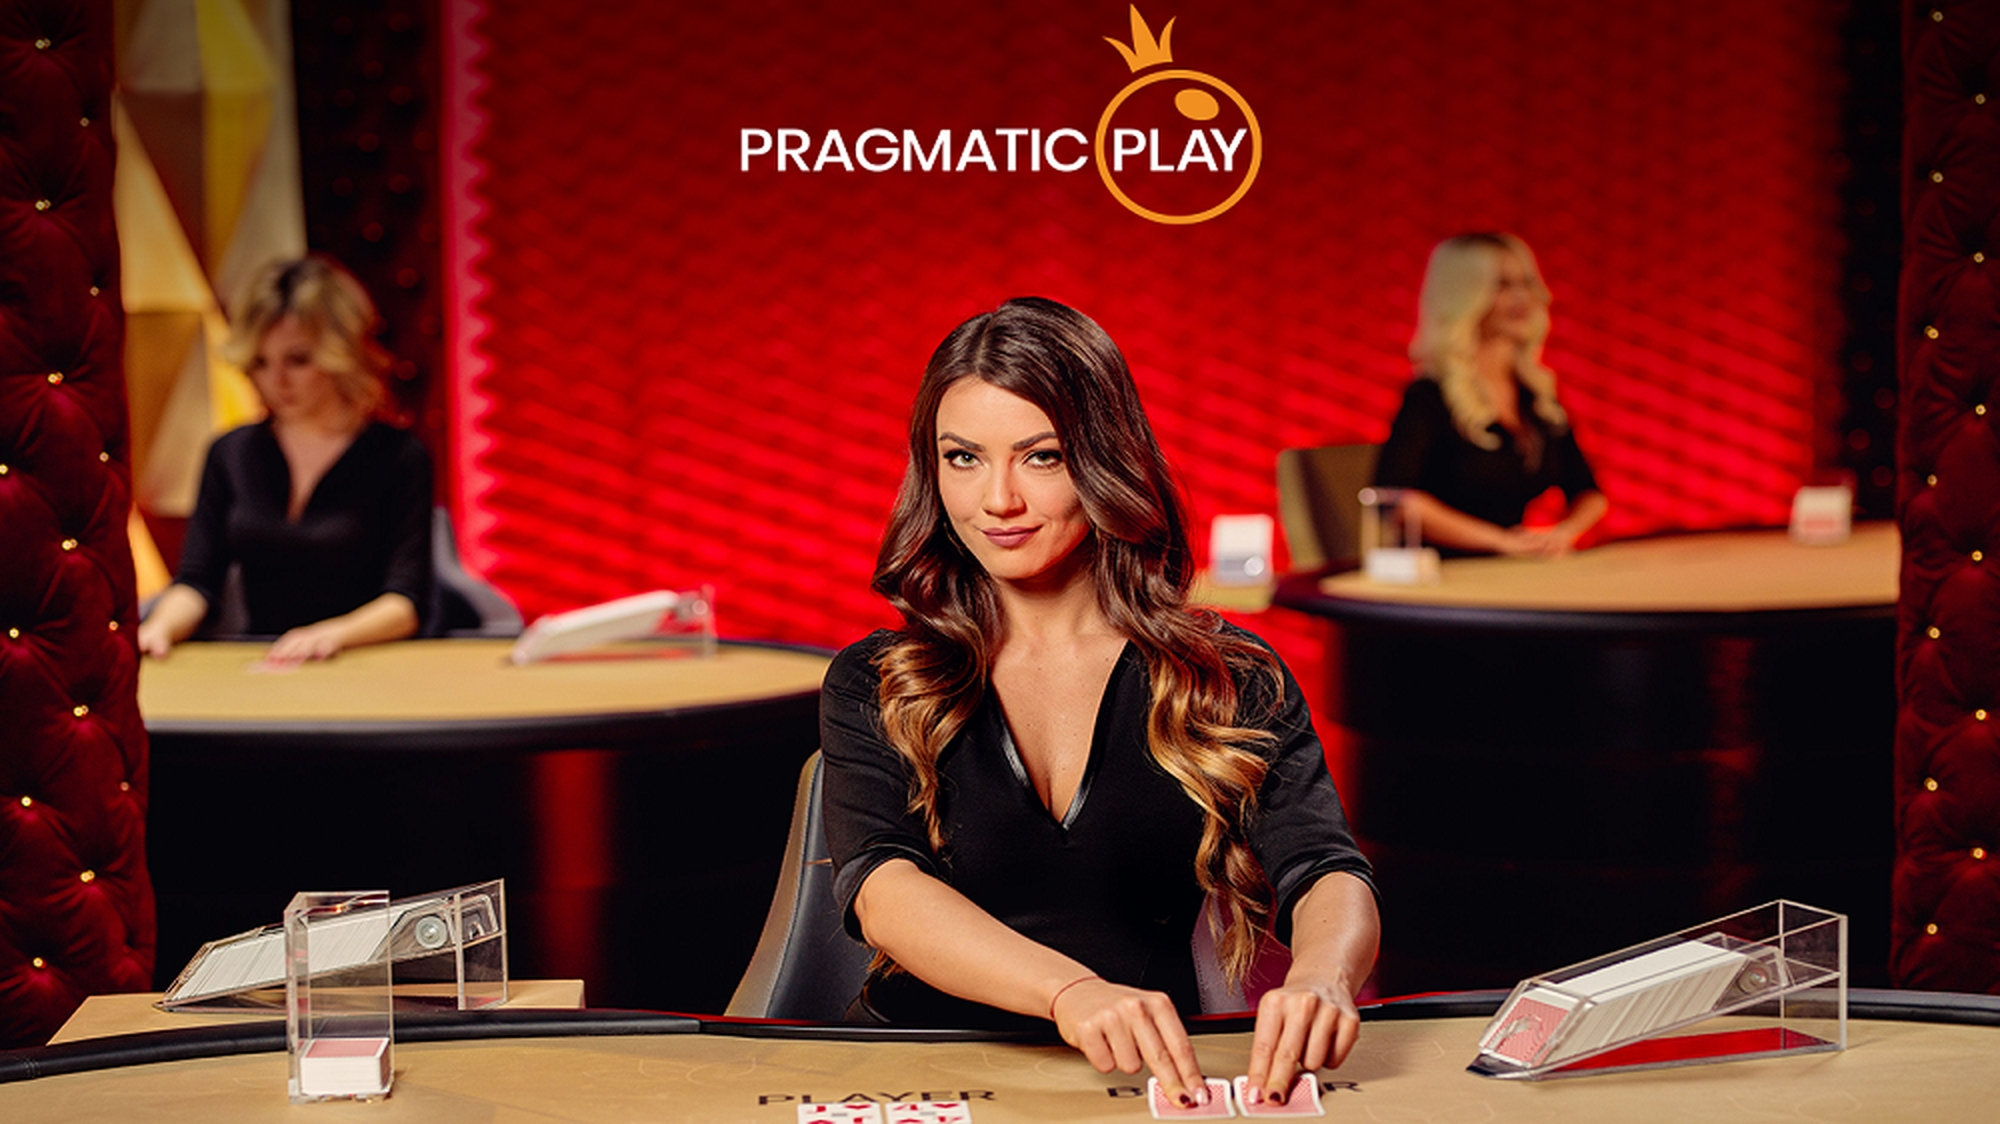 The Live Baccarat (Pragmatic Play) Online Slot Demo Game by Pragmatic Play